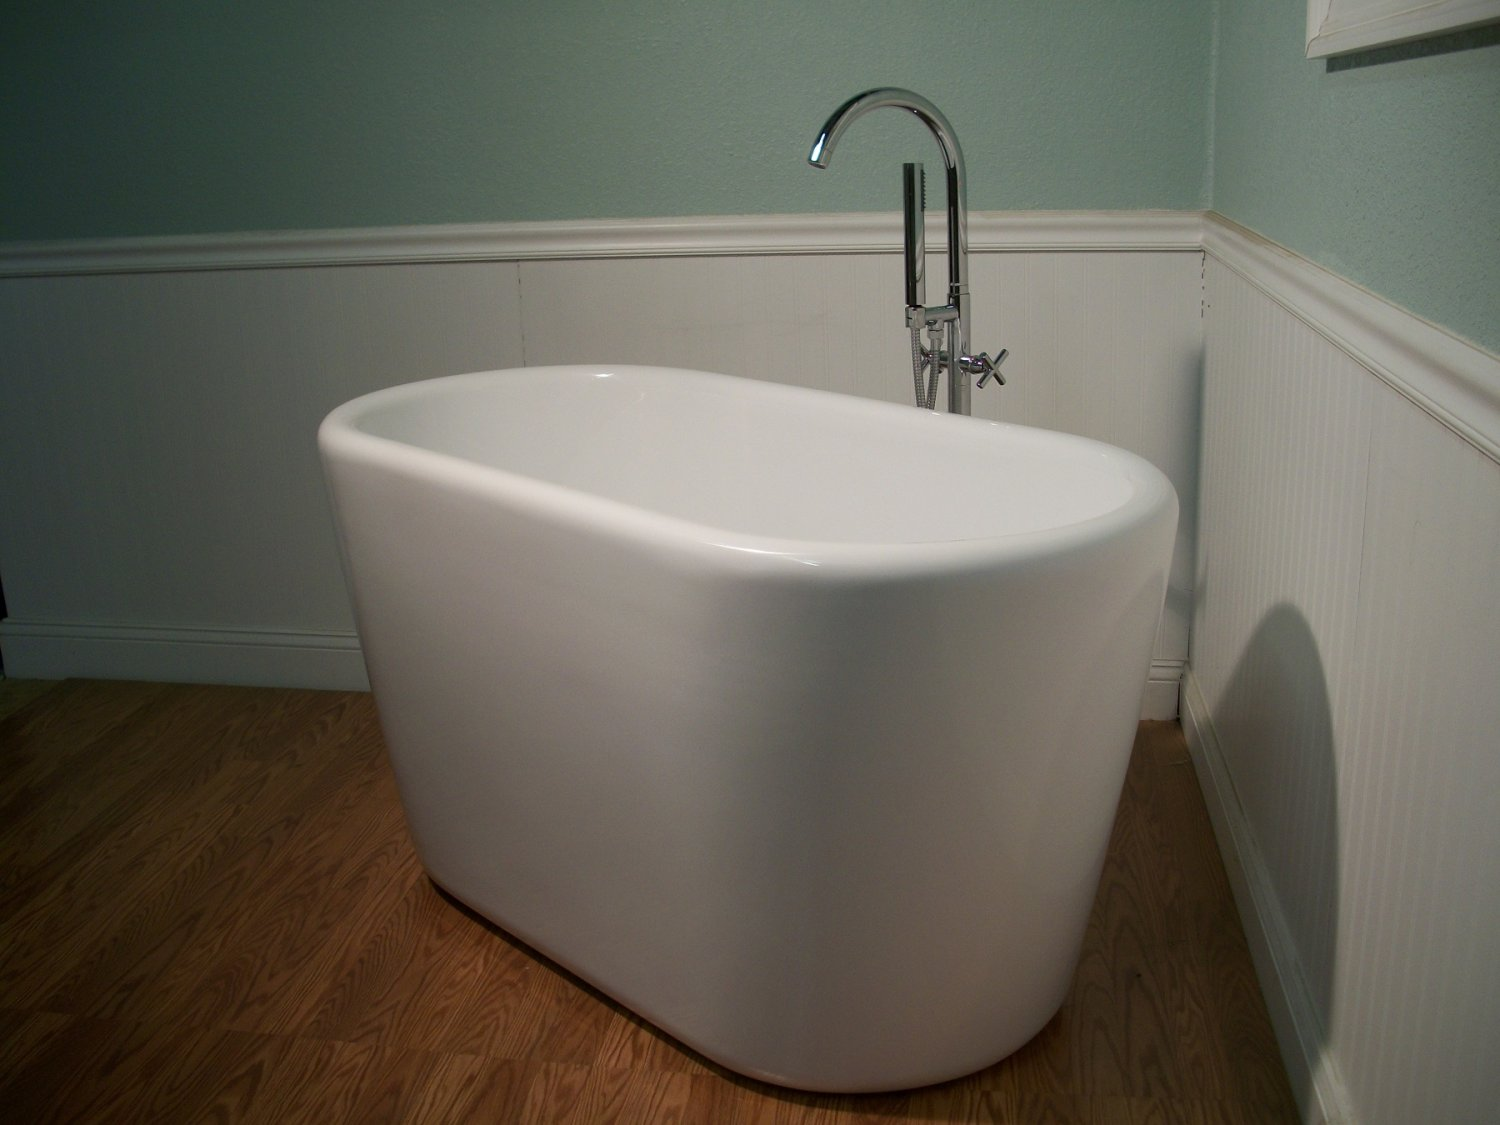 M-983 Japanese Soaking Bathtub and Faucet